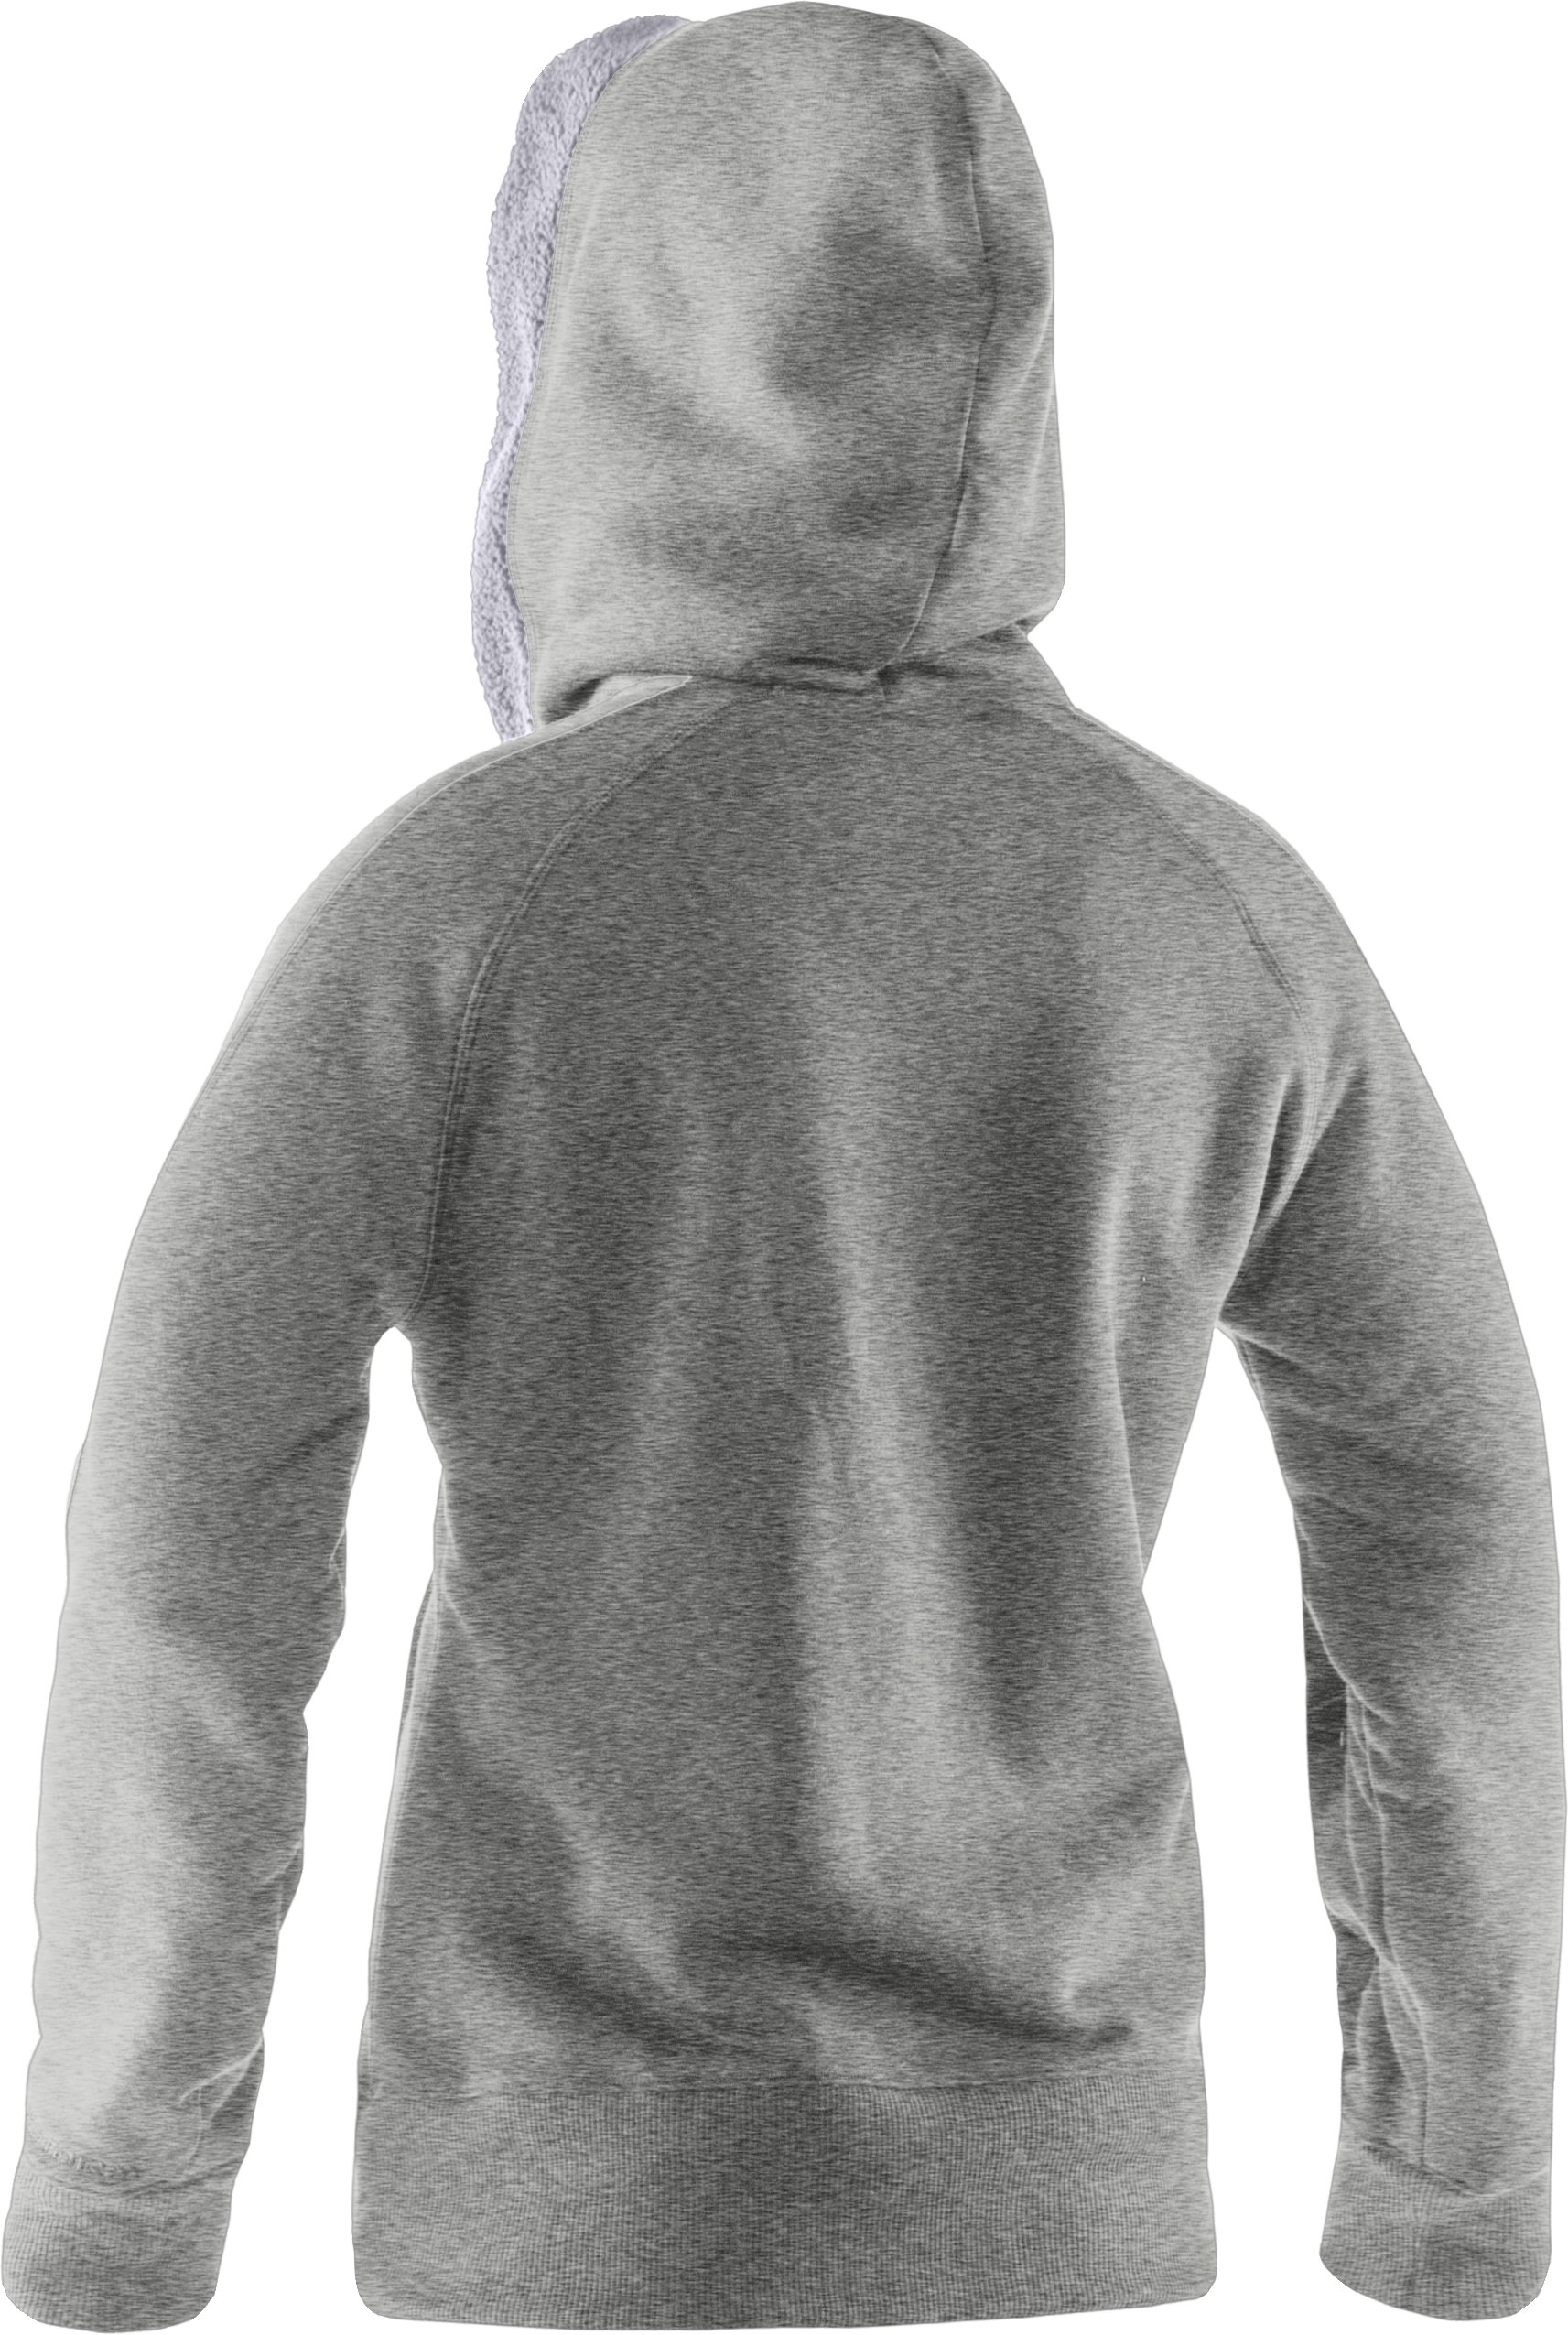 Women's Charged Cotton® Storm Sherpa Full Zip Hoodie, Silver Heather